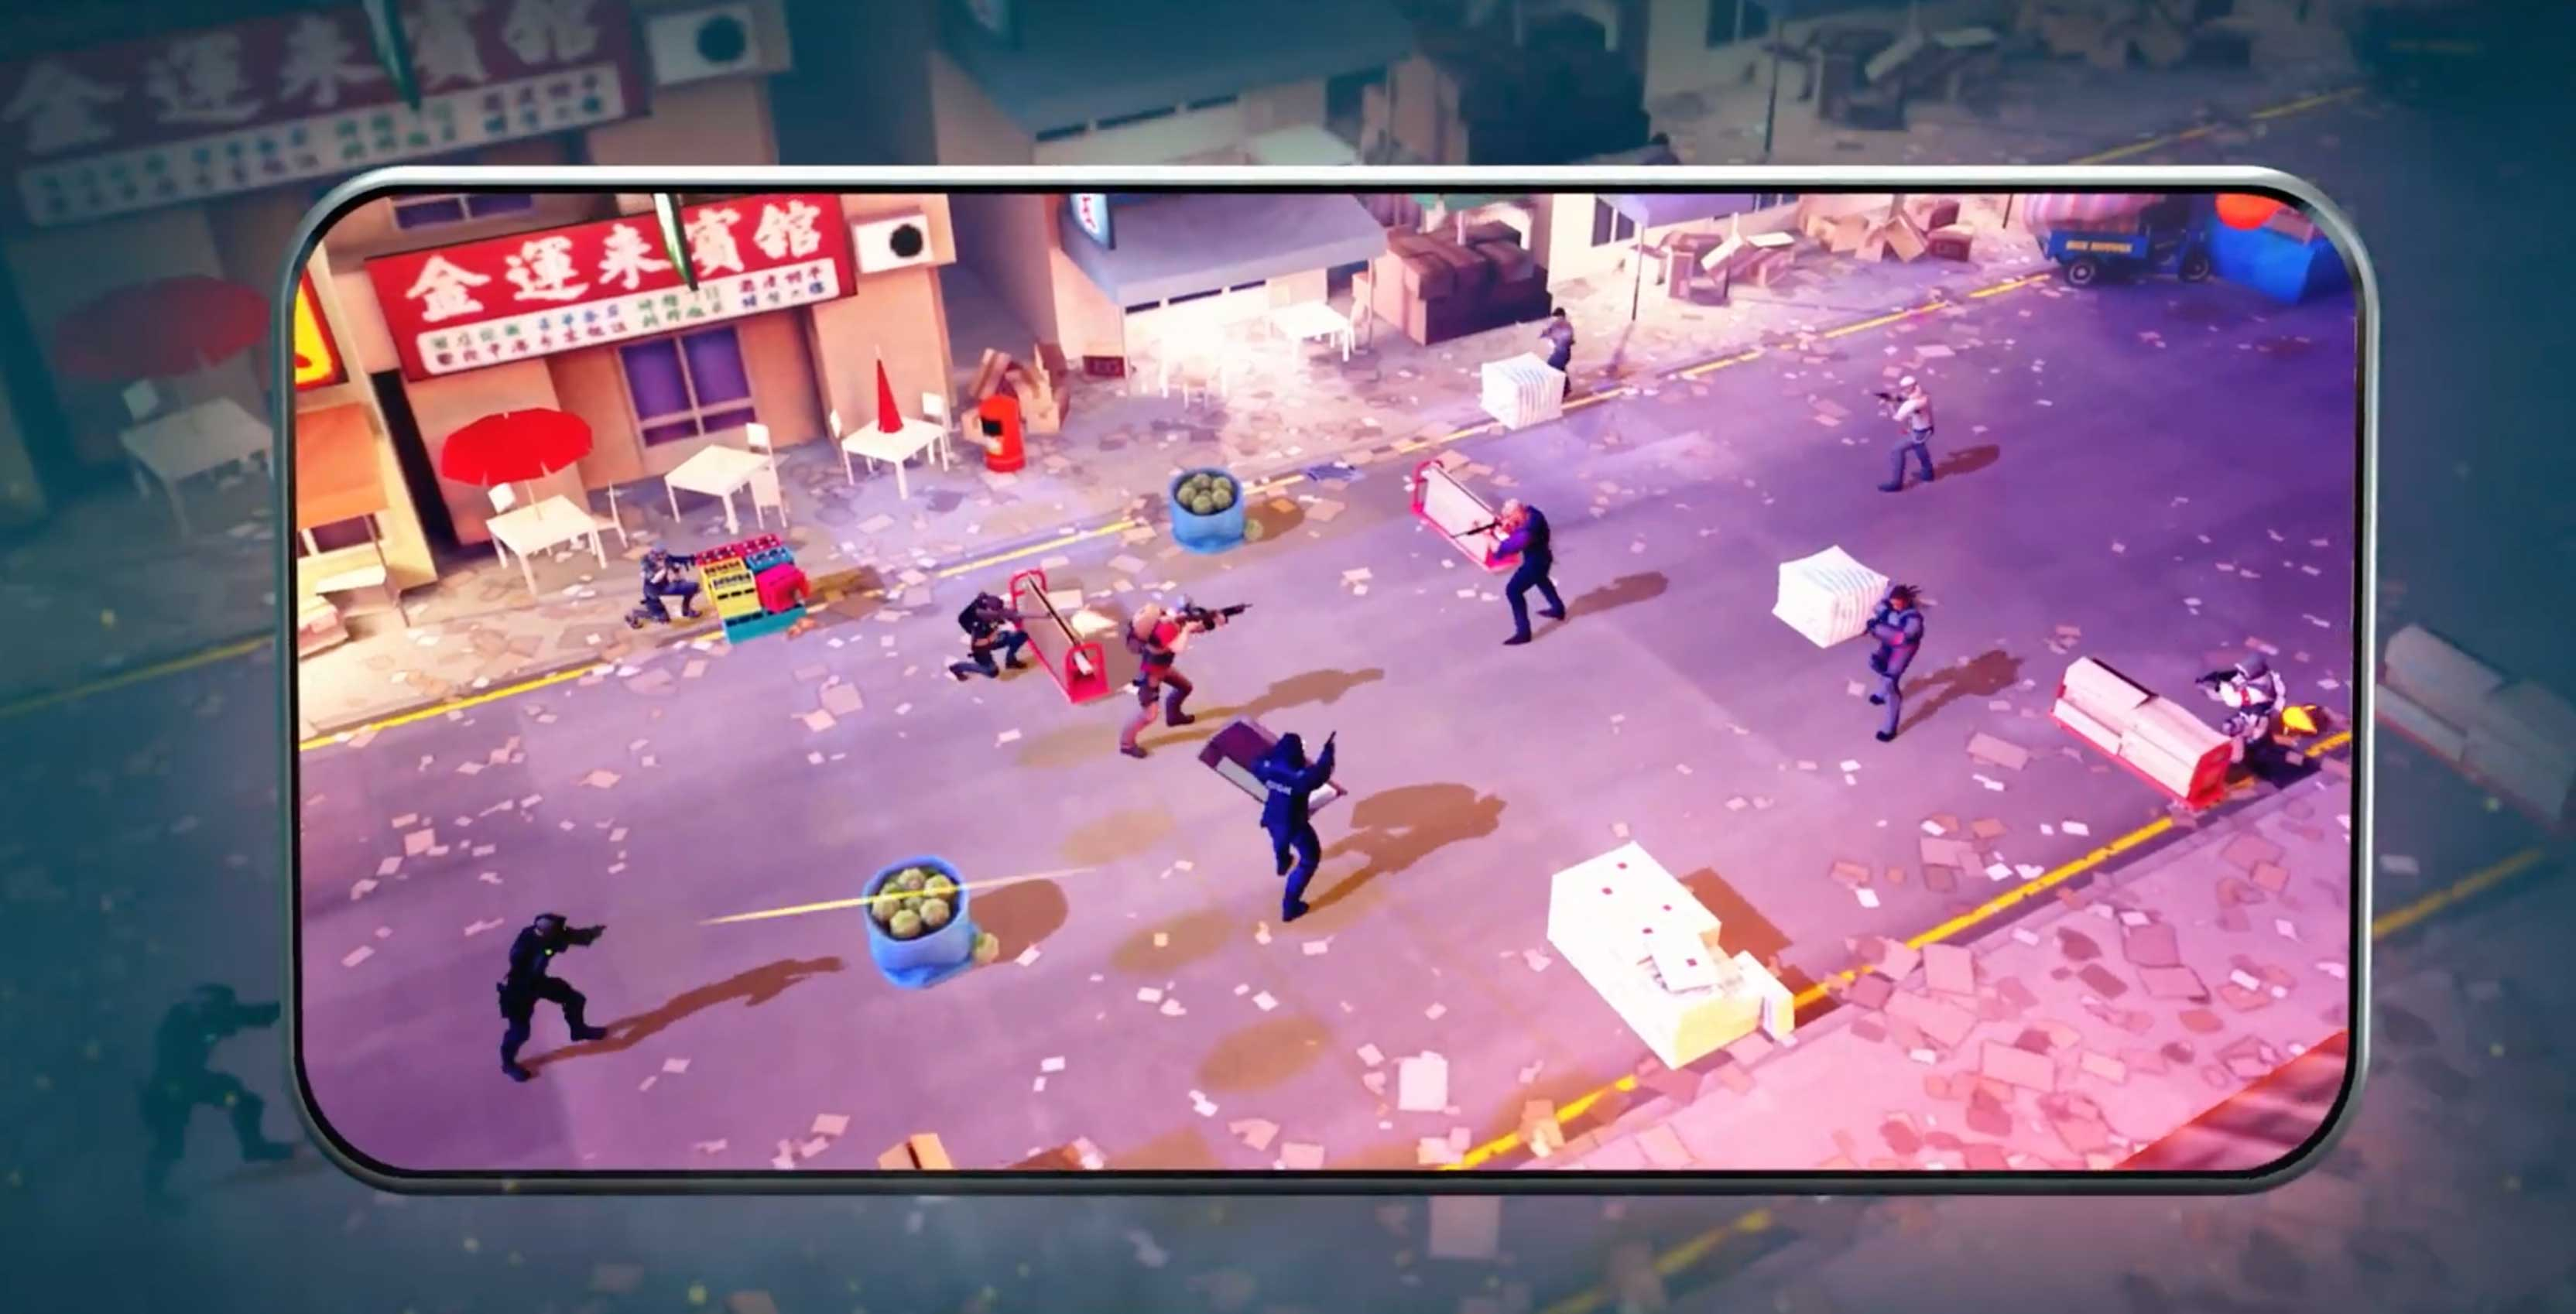 Ubisoft shows off Tom Clancy's Elite Squad mobile game at E3